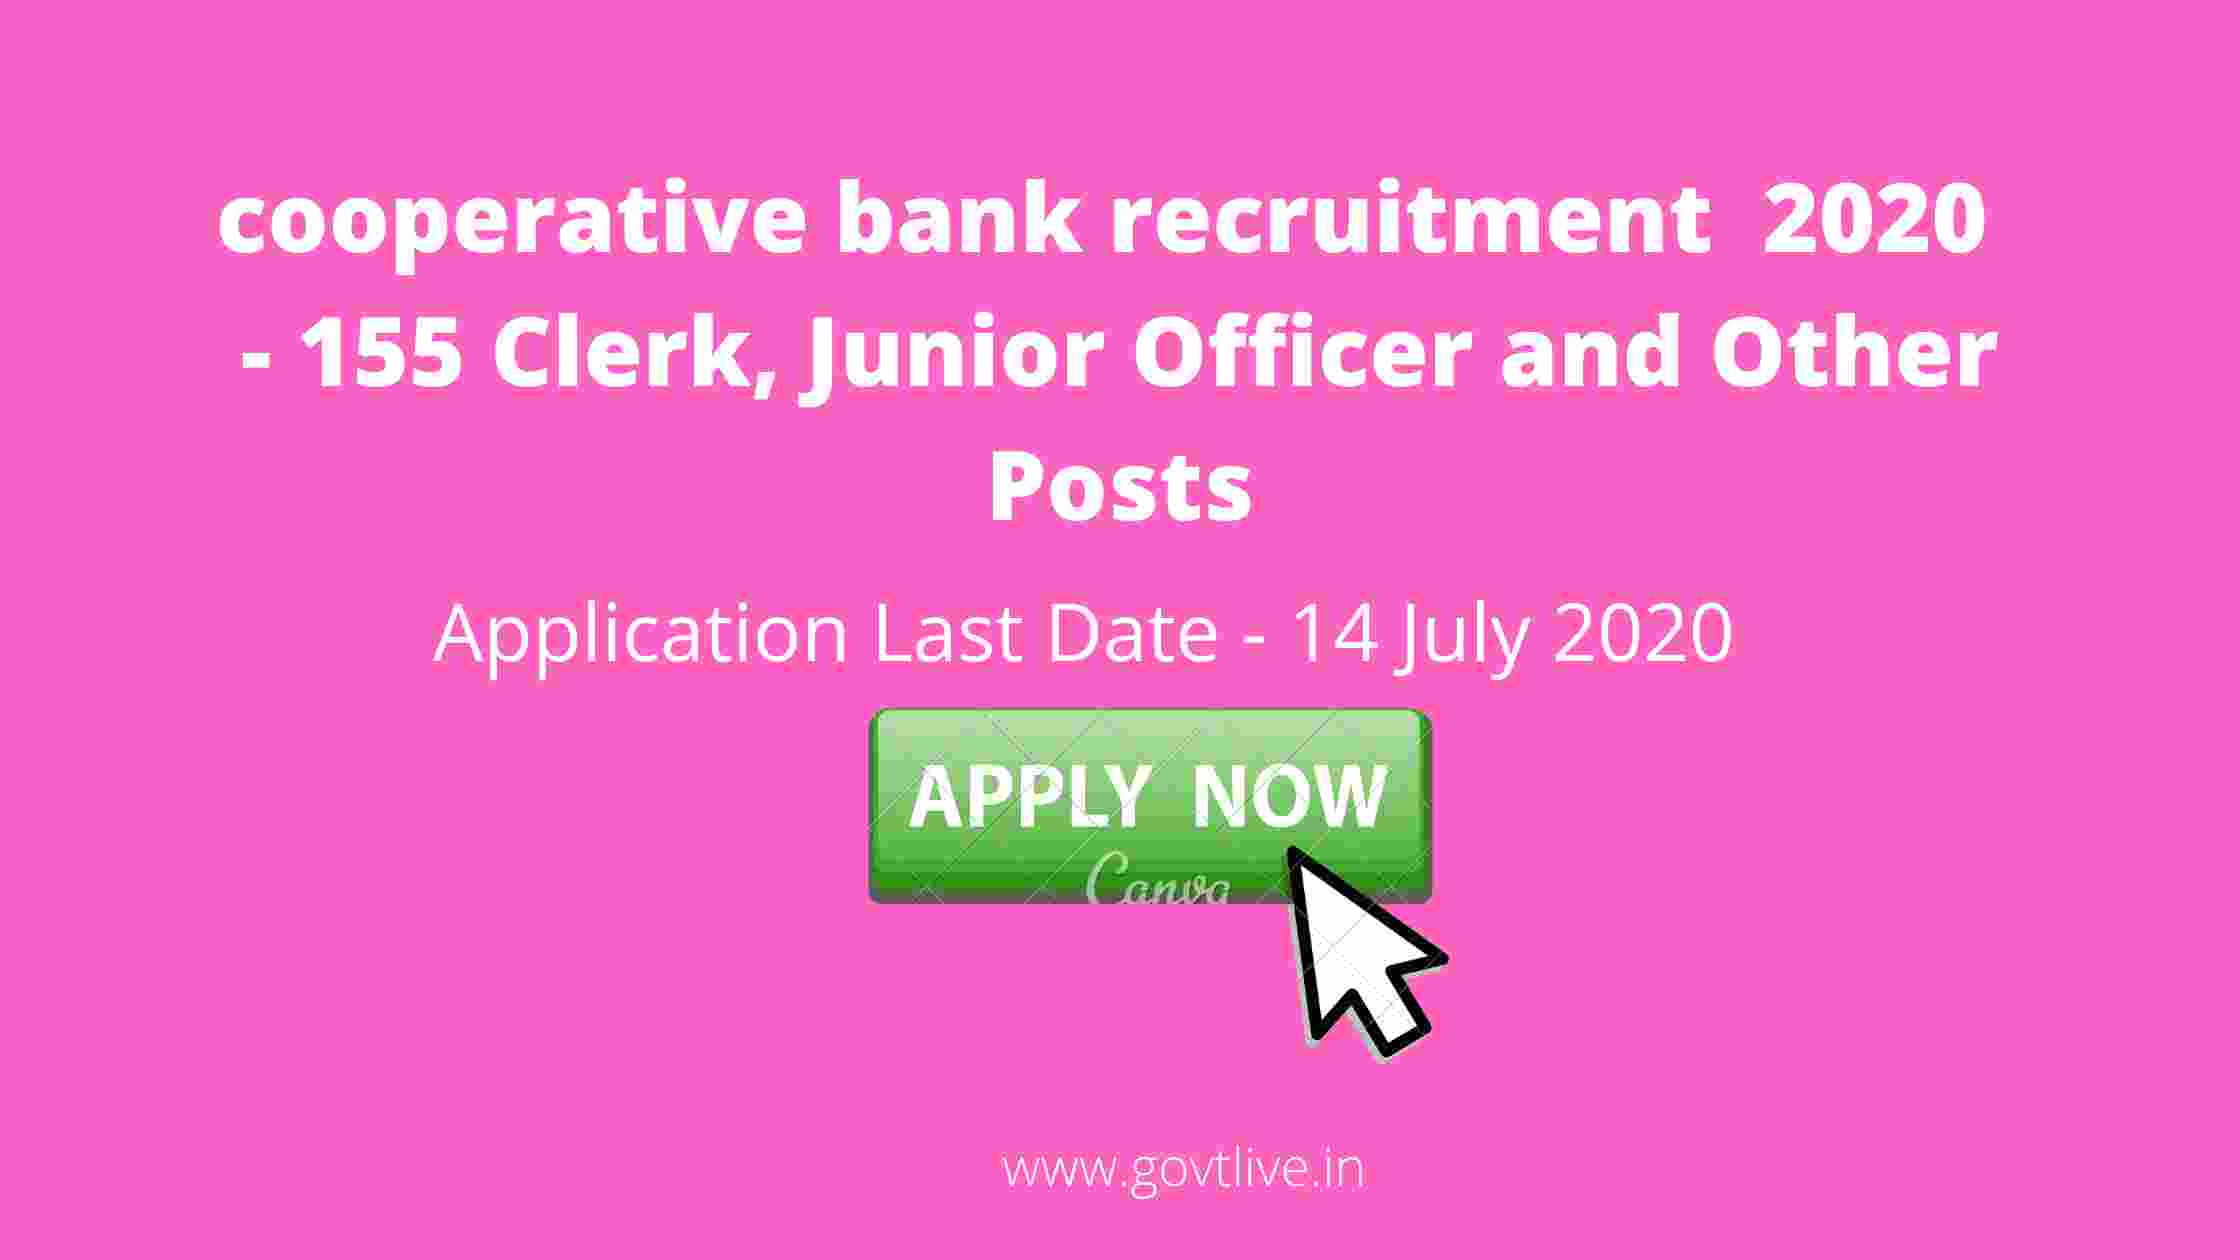 cooperative bank recruitment  2020  - 155 Clerk, Junior Officer and Other Posts